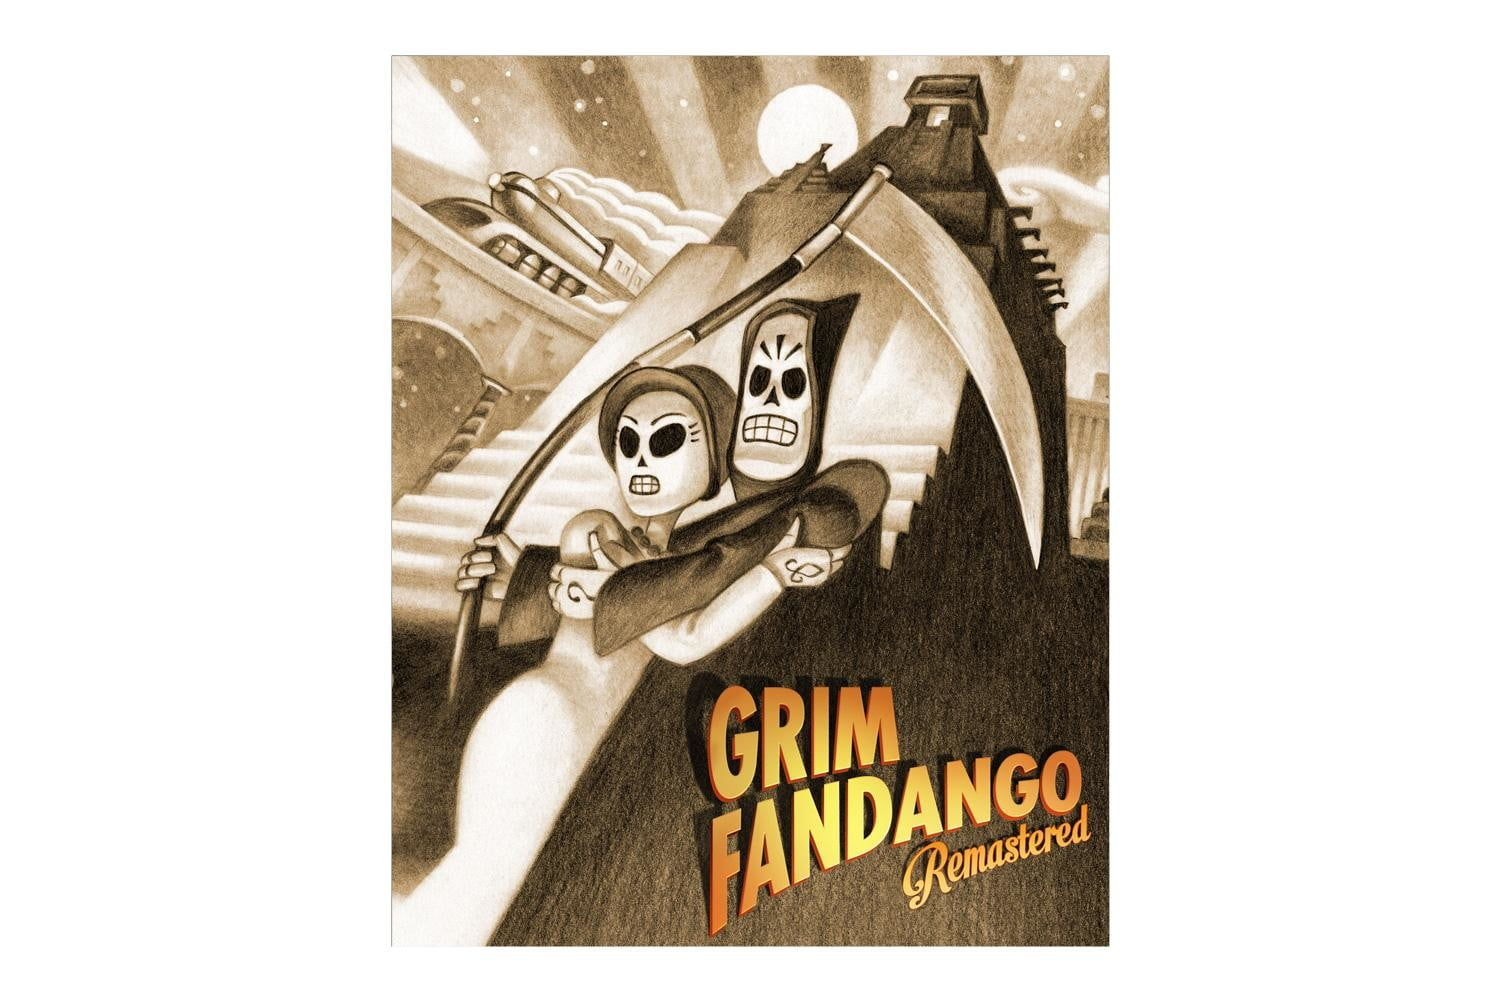 Grim-Fandango-remastered-cover-art